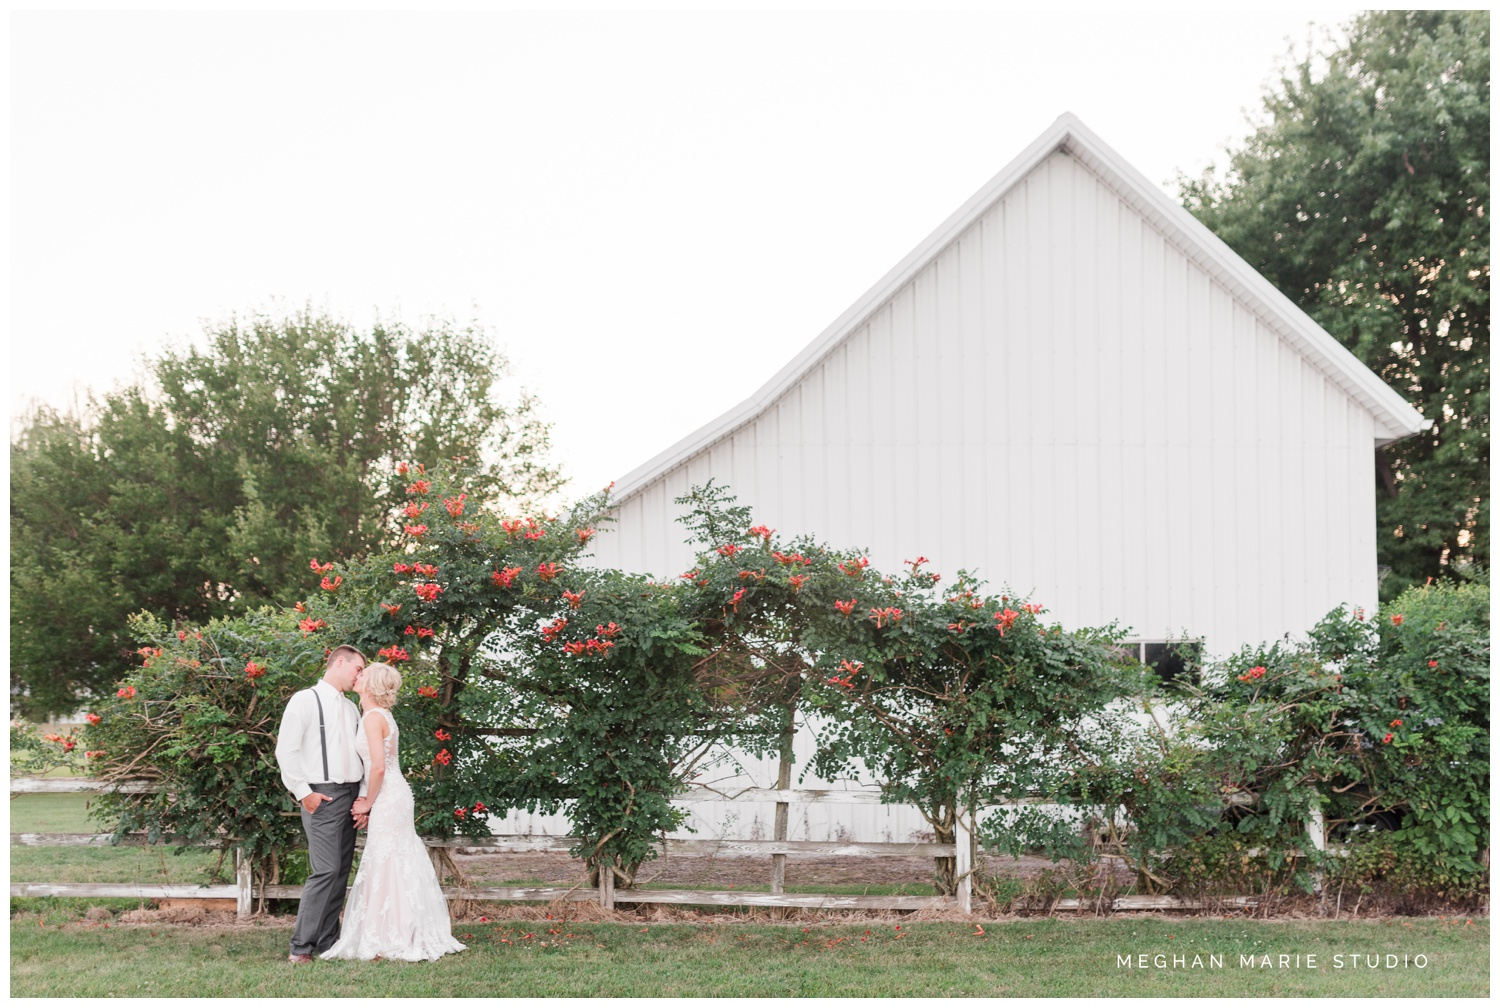 meghan marie studio wedding photographer ohio troy dayton columbus small town rustic rural farm cows vintage mauves dusty rose pinks whites ivorys grays f1 sound paper lanterns pearls_0660.jpg